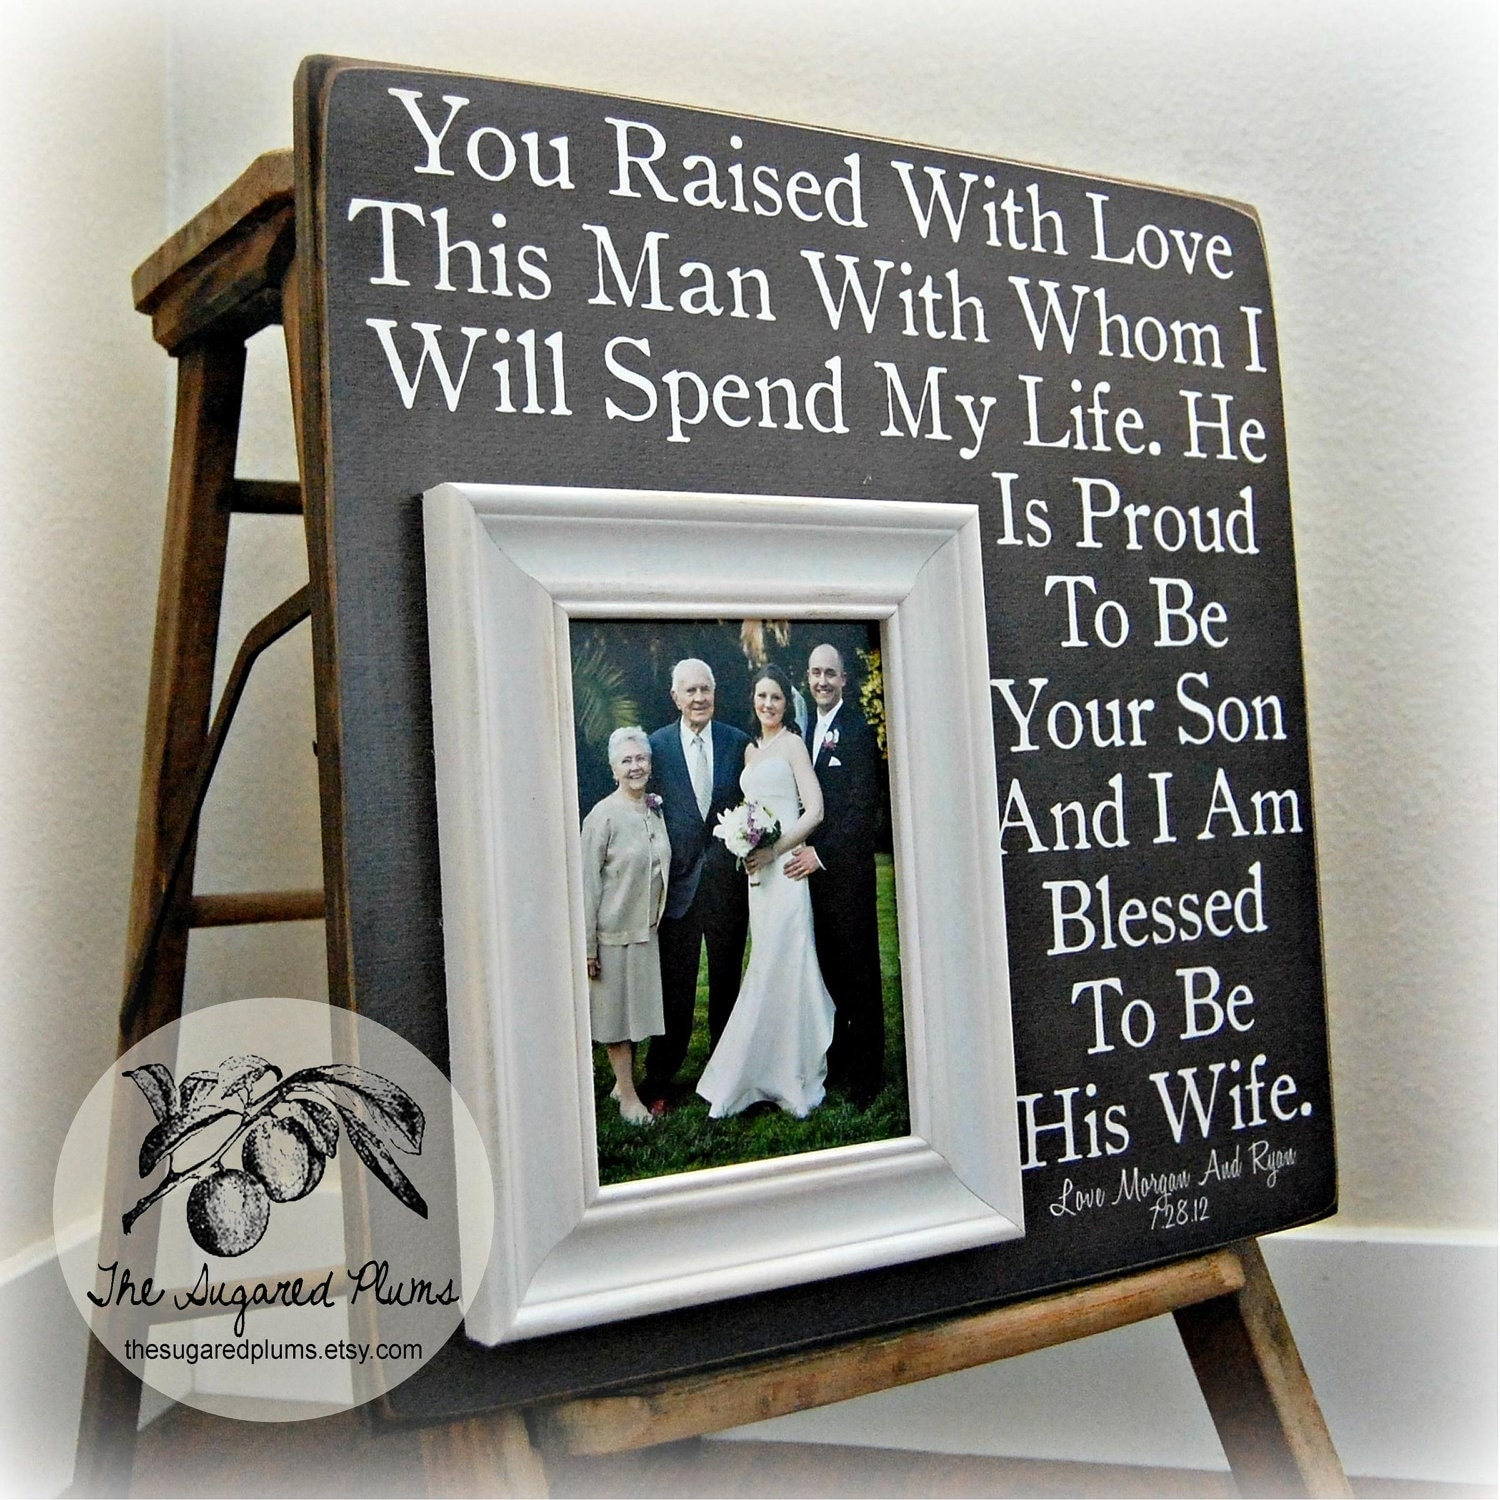 Customary Wedding Gift From Grooms Parents : Parents of the Groom Gift Mother of the Groom by thesugaredplums